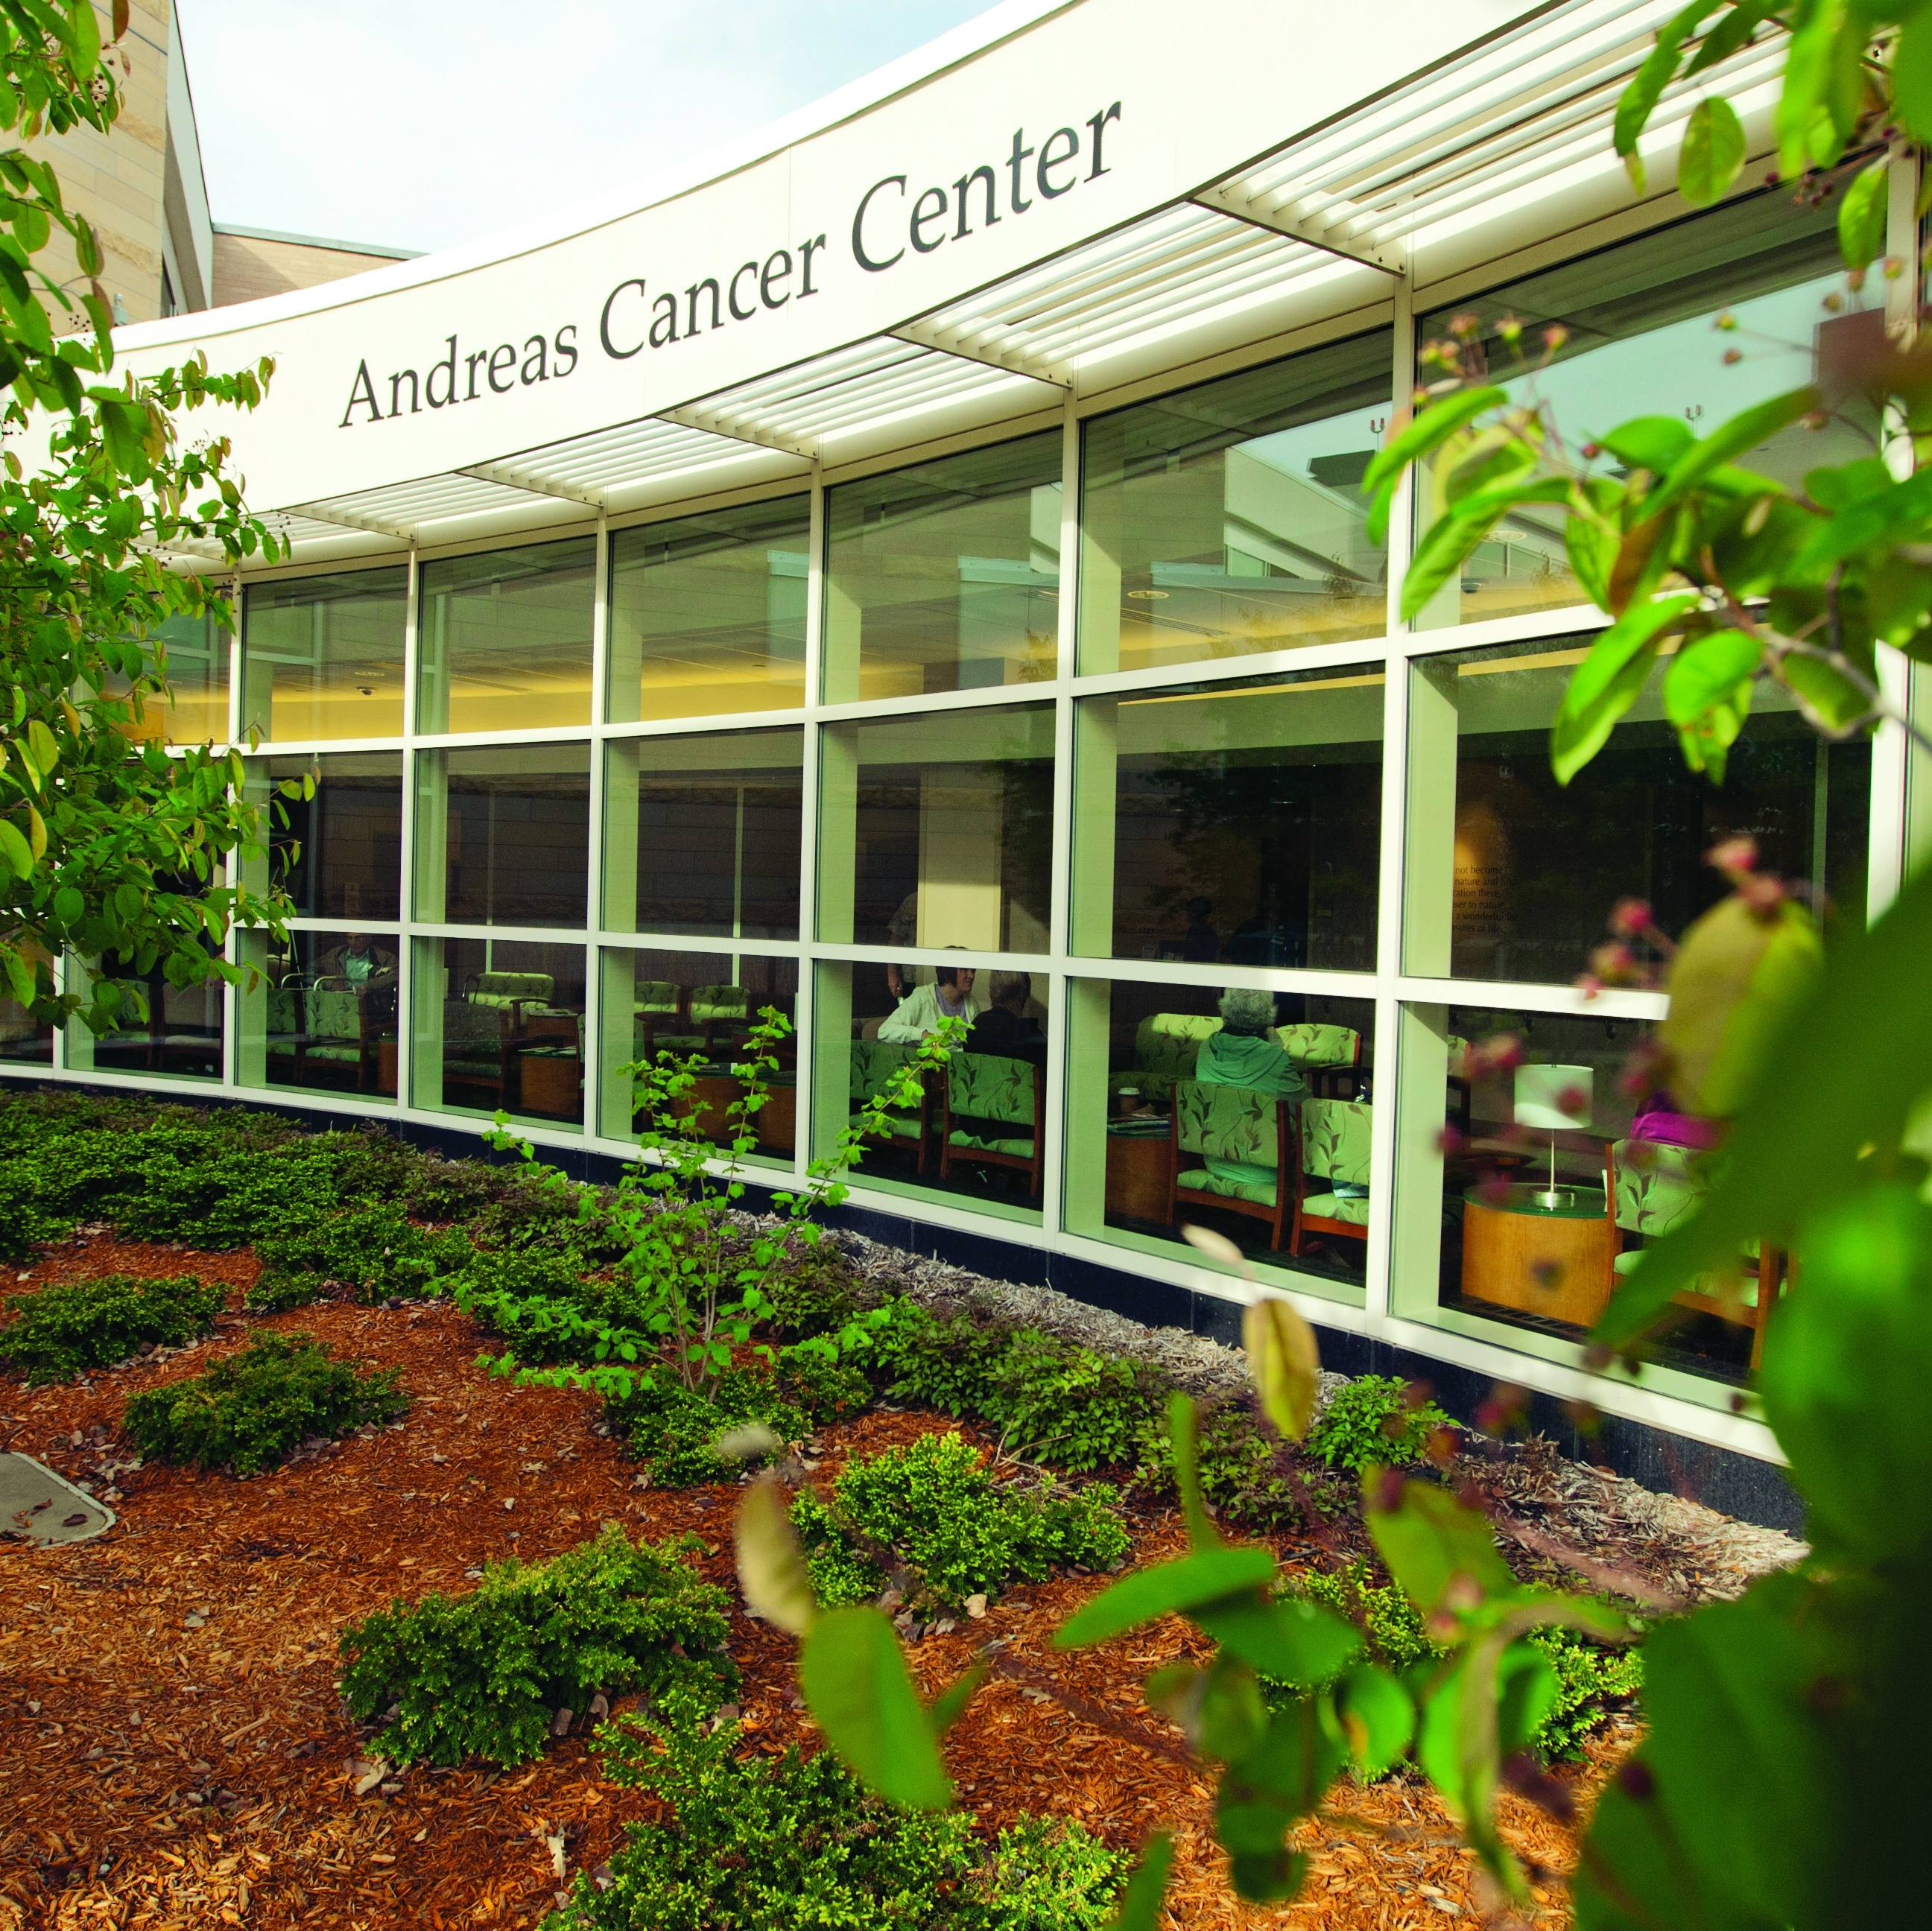 Andreas Cancer Center in Mankato, Minn.